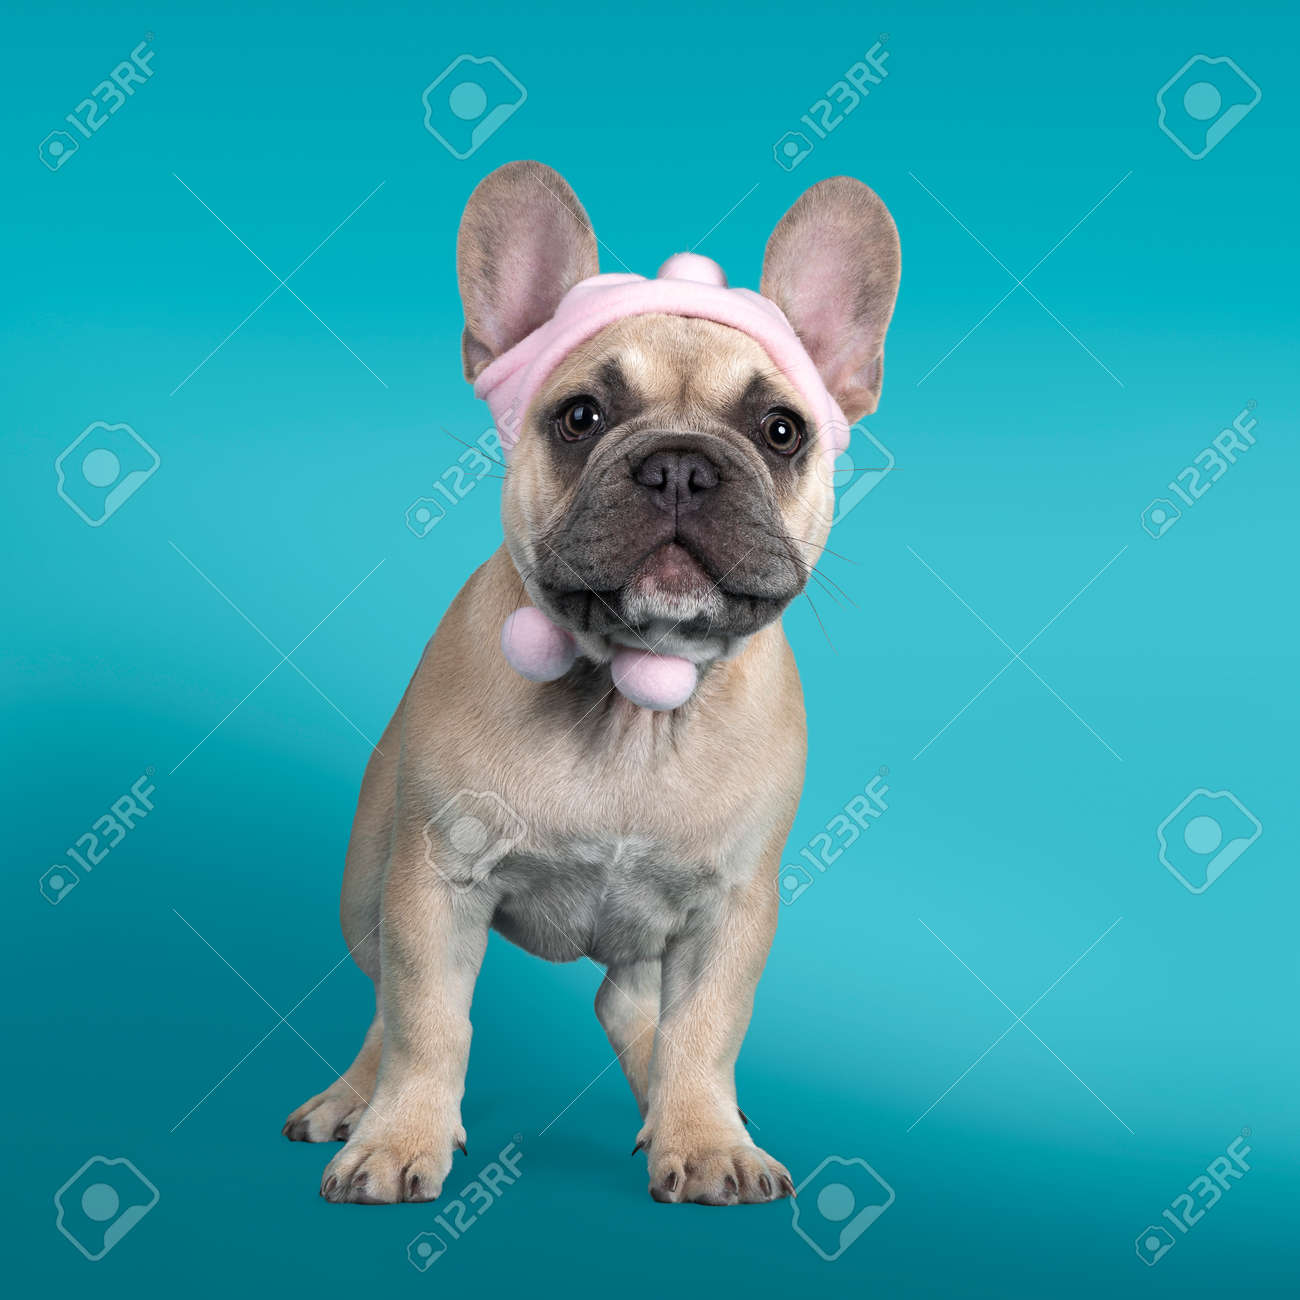 Adorable French Bulldog puppy, standing facing front wearing soft pink hat. Looking towards camera. Isolated on turquoise background. - 173357238